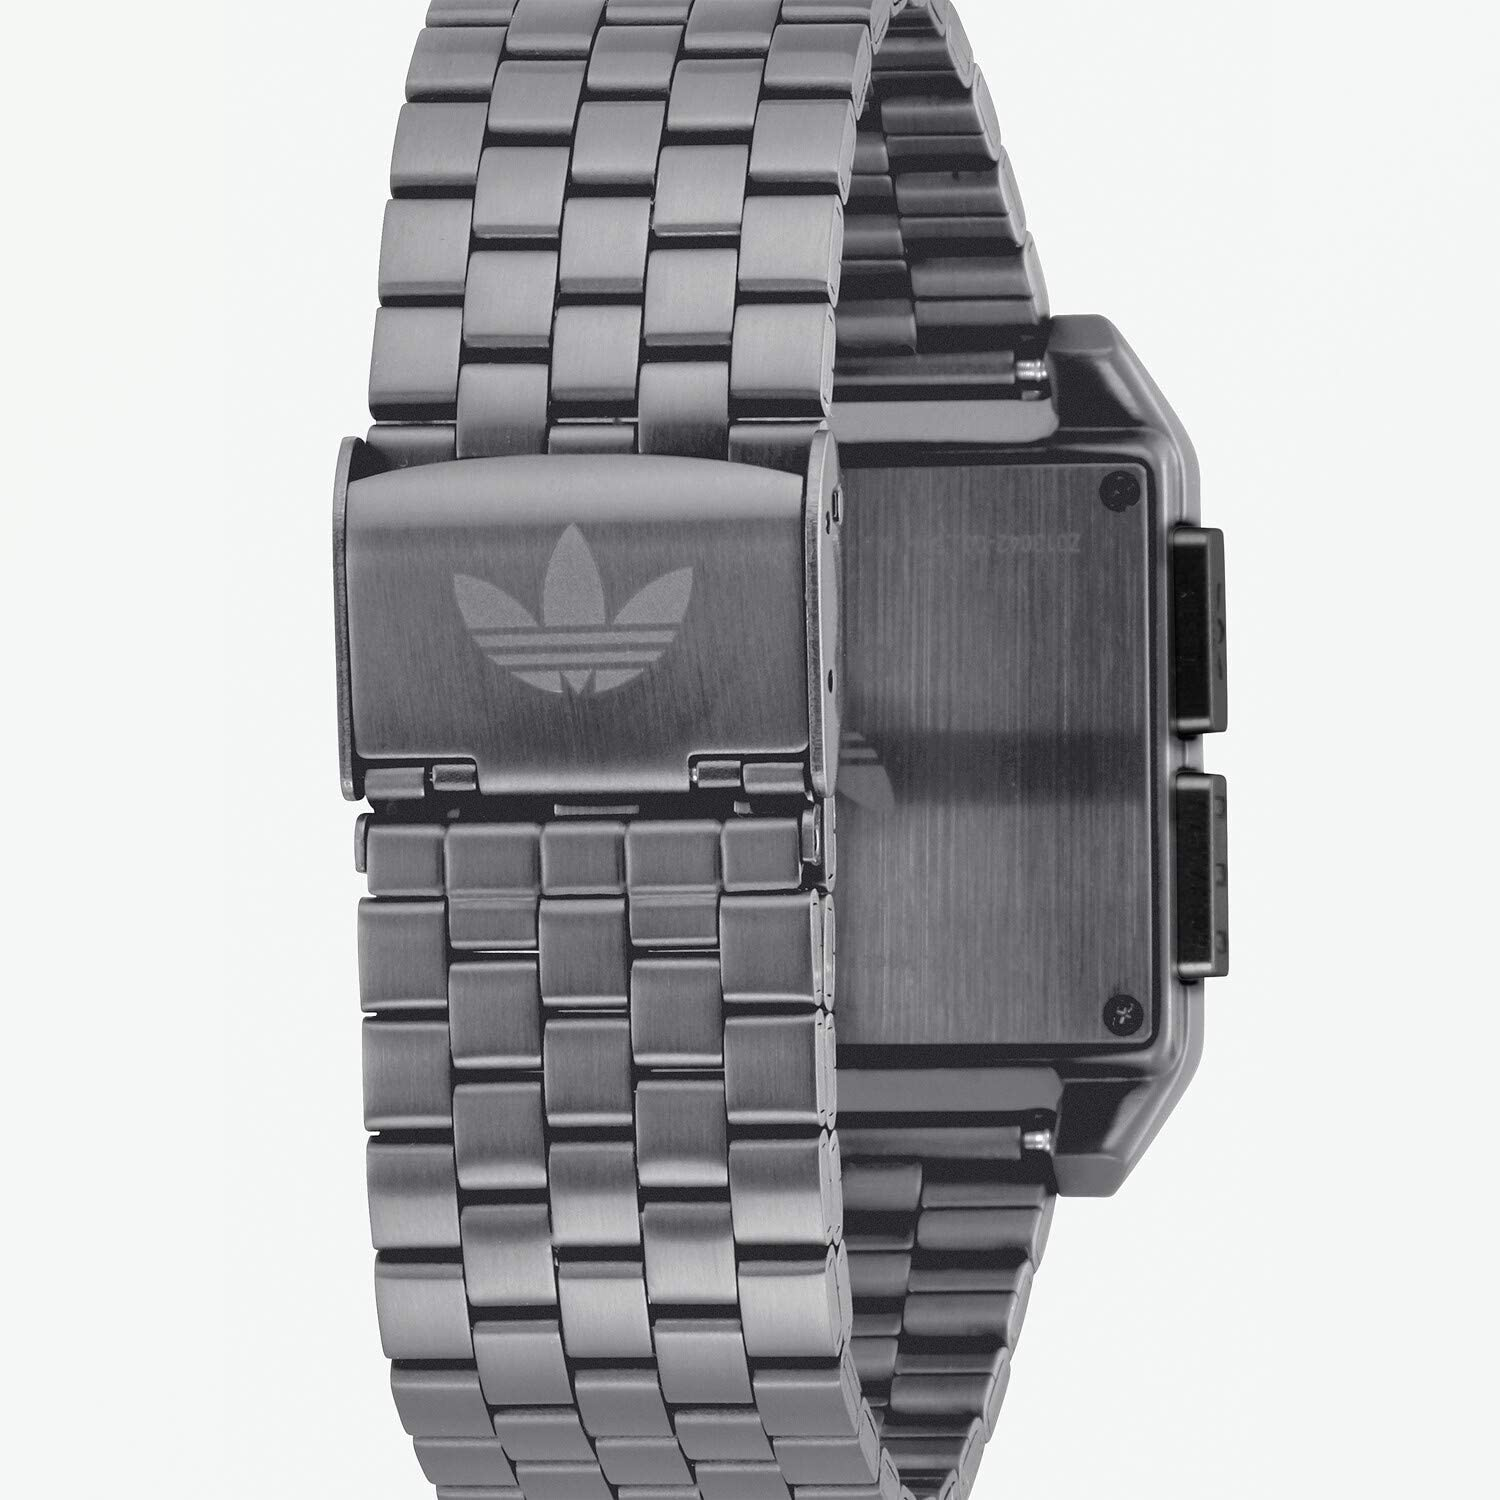 Adidas Watches Archive_M1. Men's 70's Style Stainless Steel Digital Watch with 5 Link Bracelet (36 mm). Gunmetal / Black